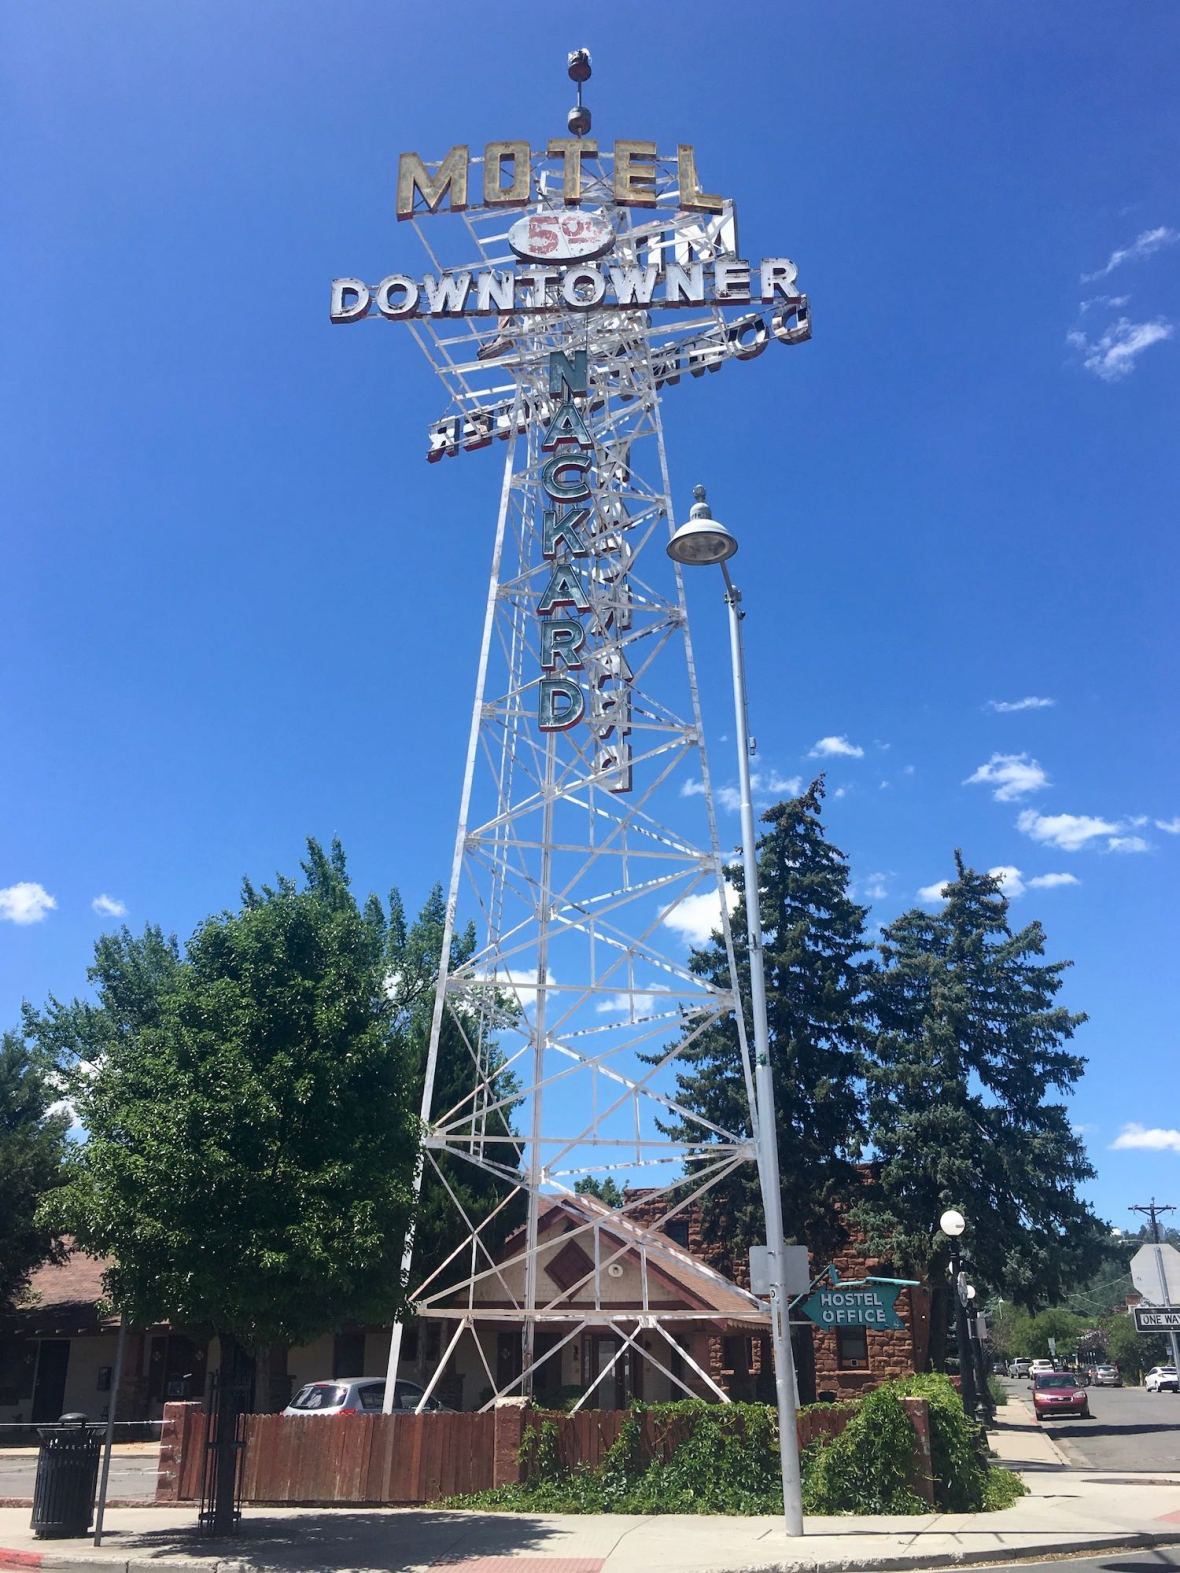 Downtowner Motel Hostel Sign in Flagstaff, Arizona